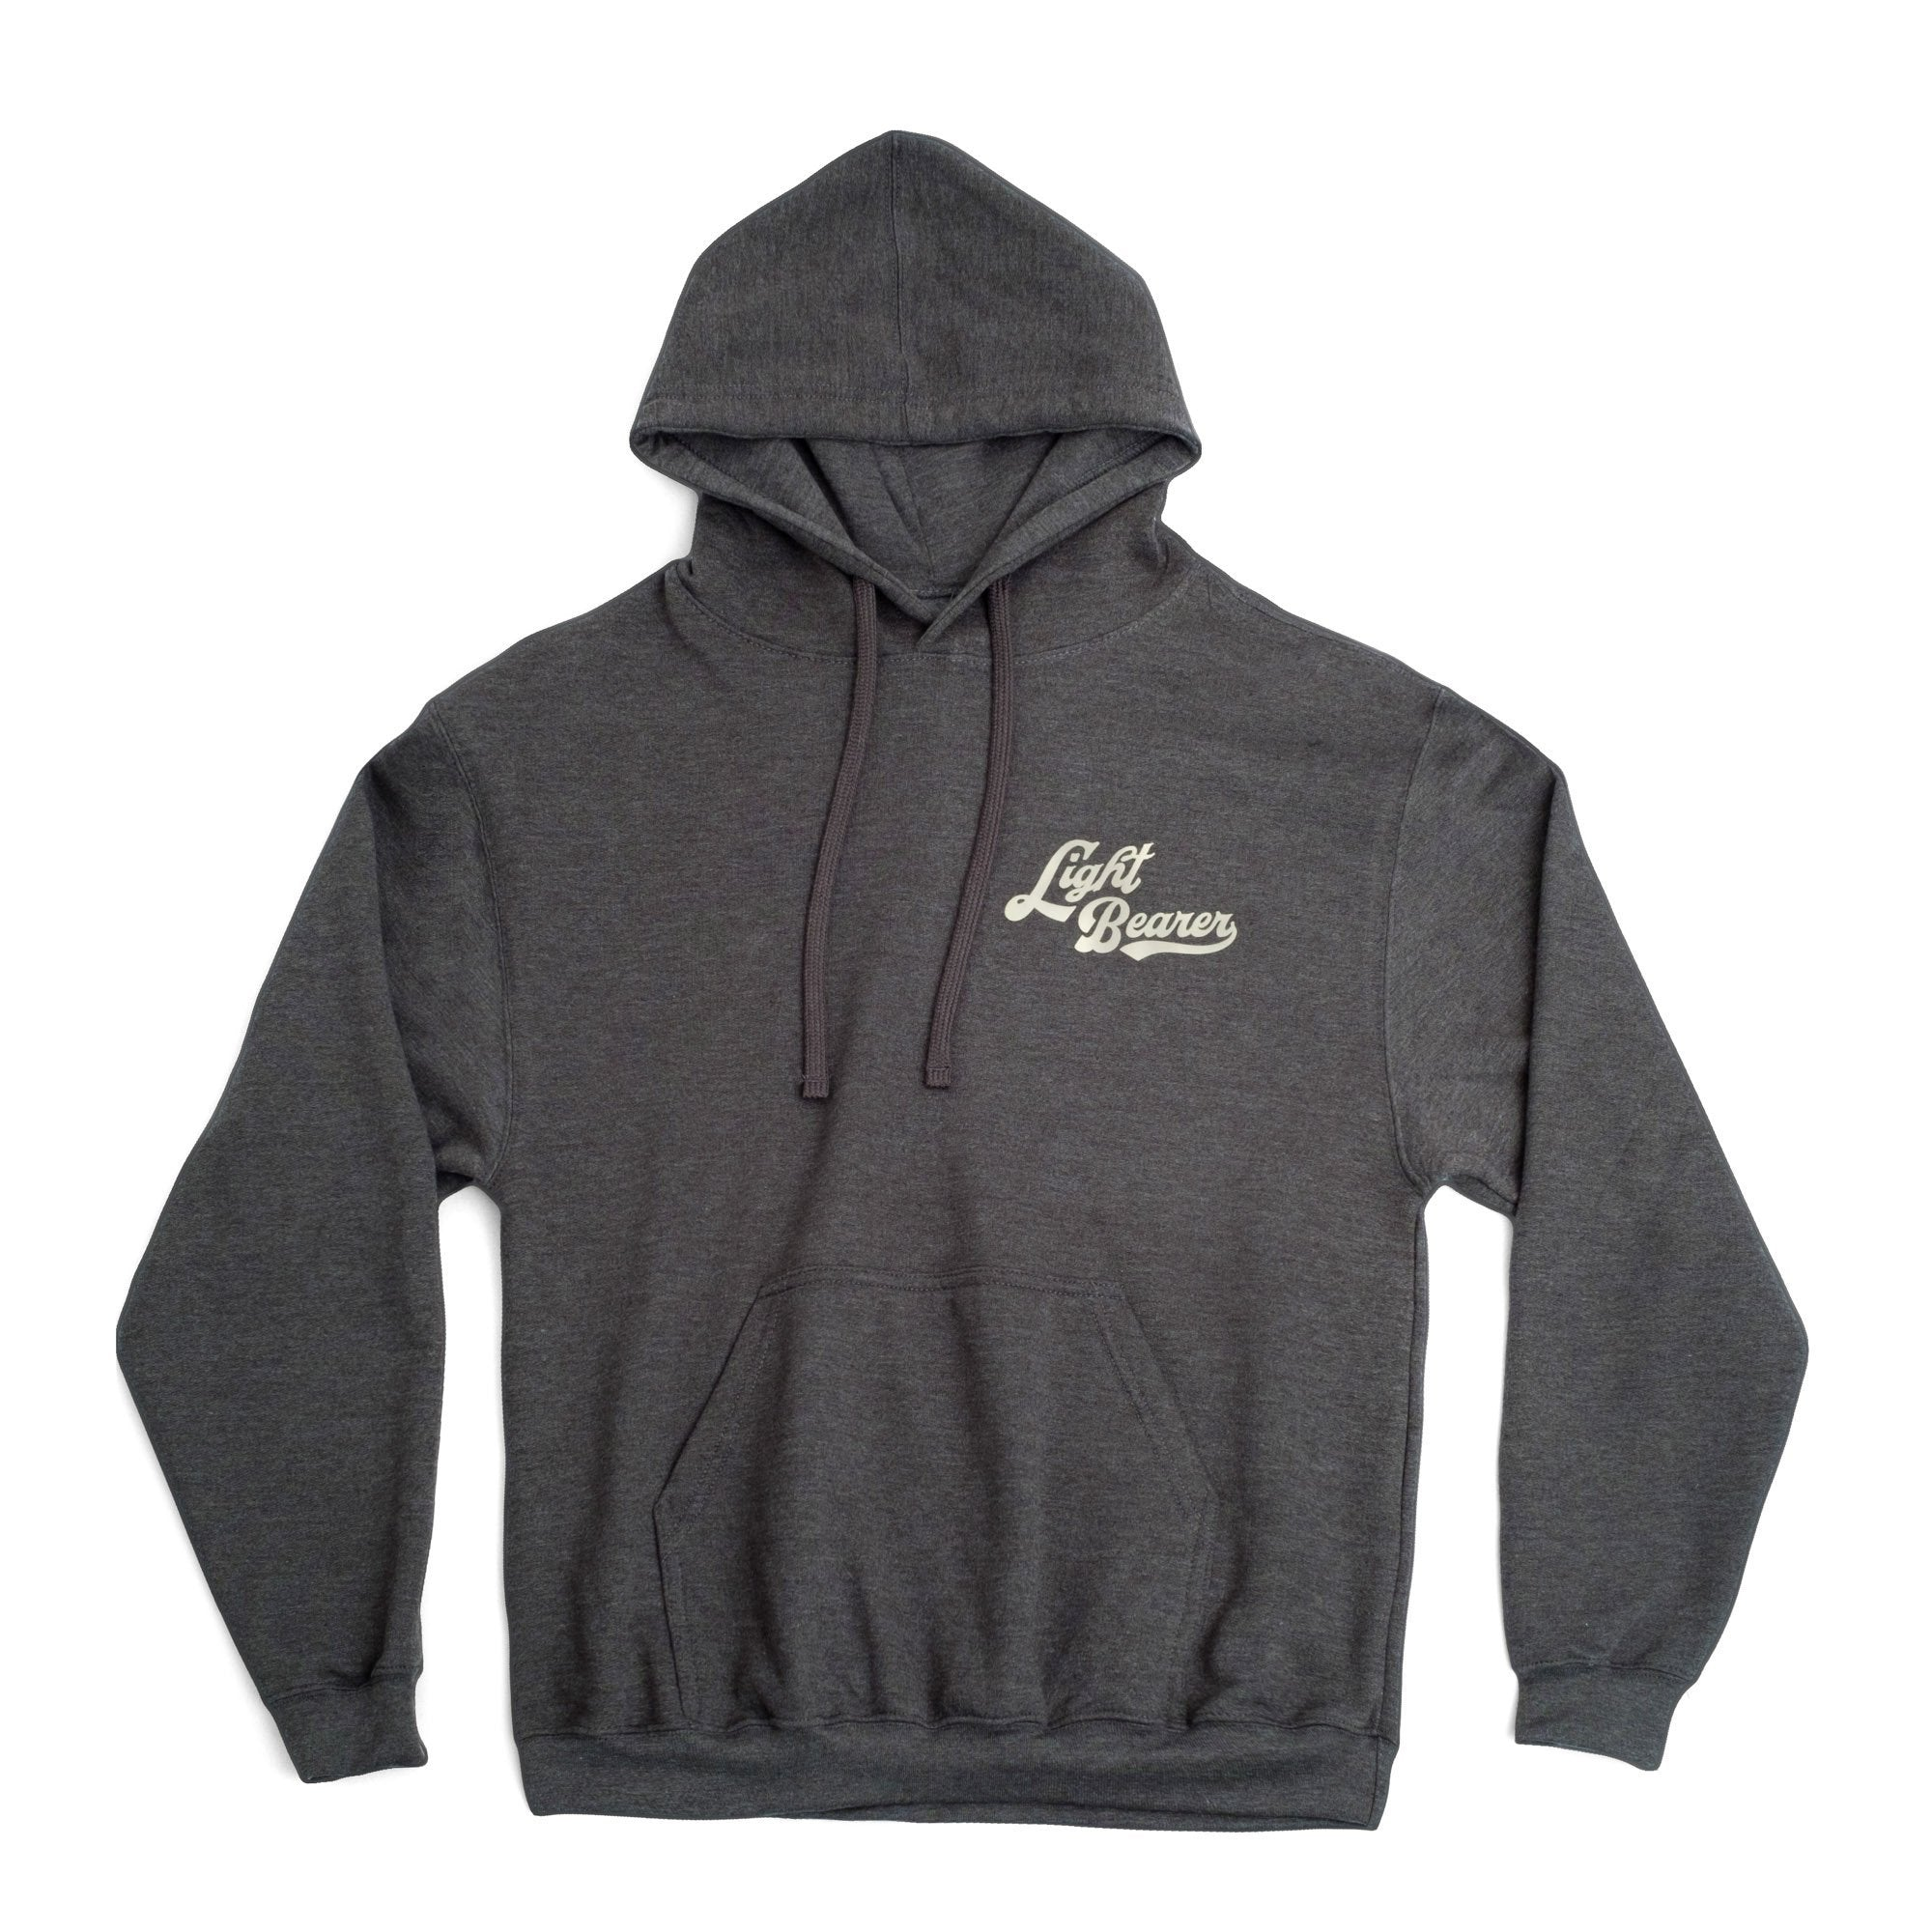 116 Light Bearer Pullover Hood